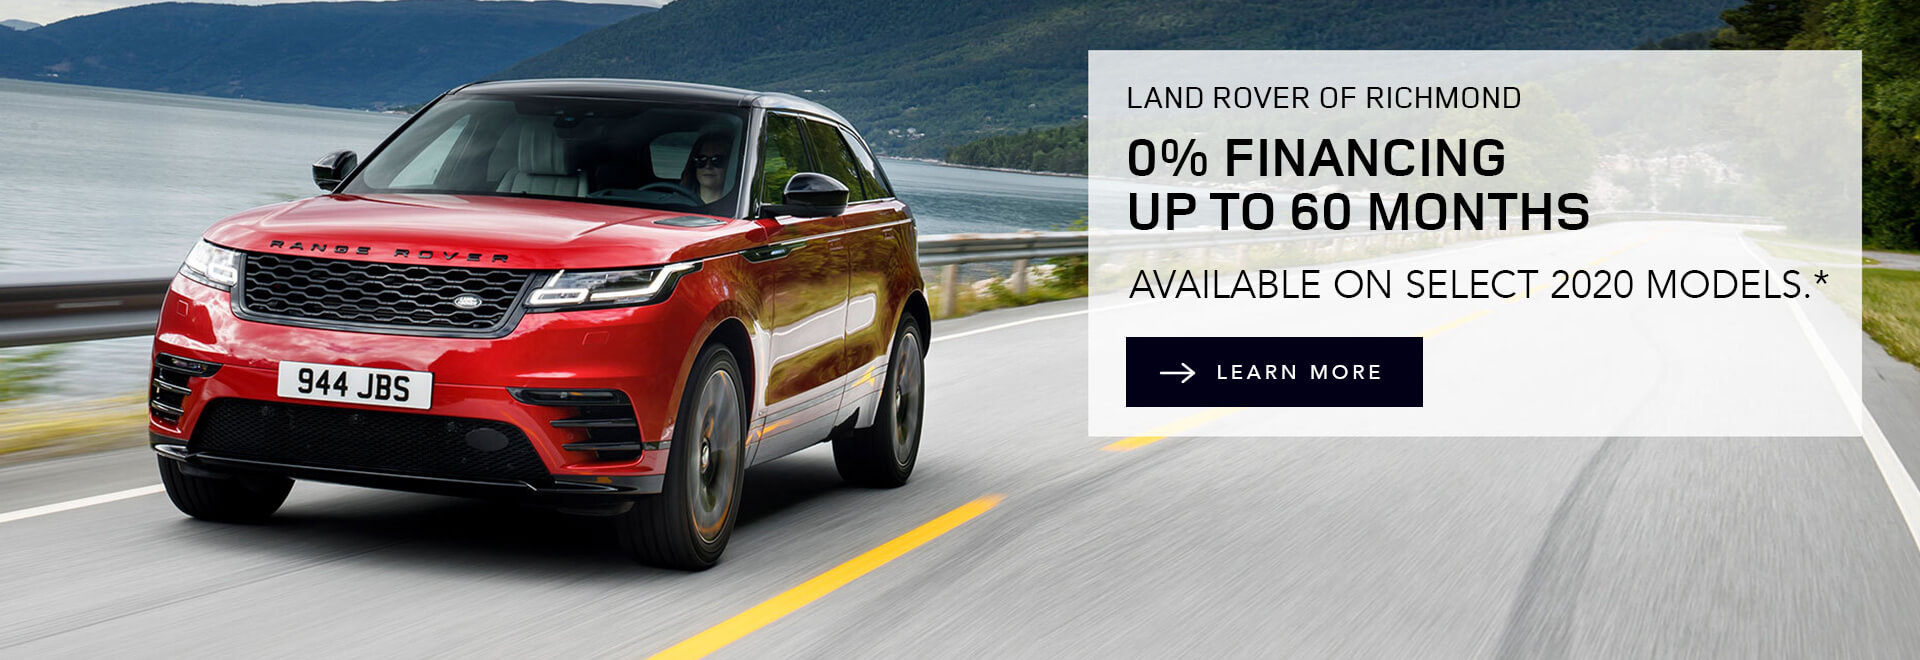 Land Rover of Richmond 0% Finance Offer